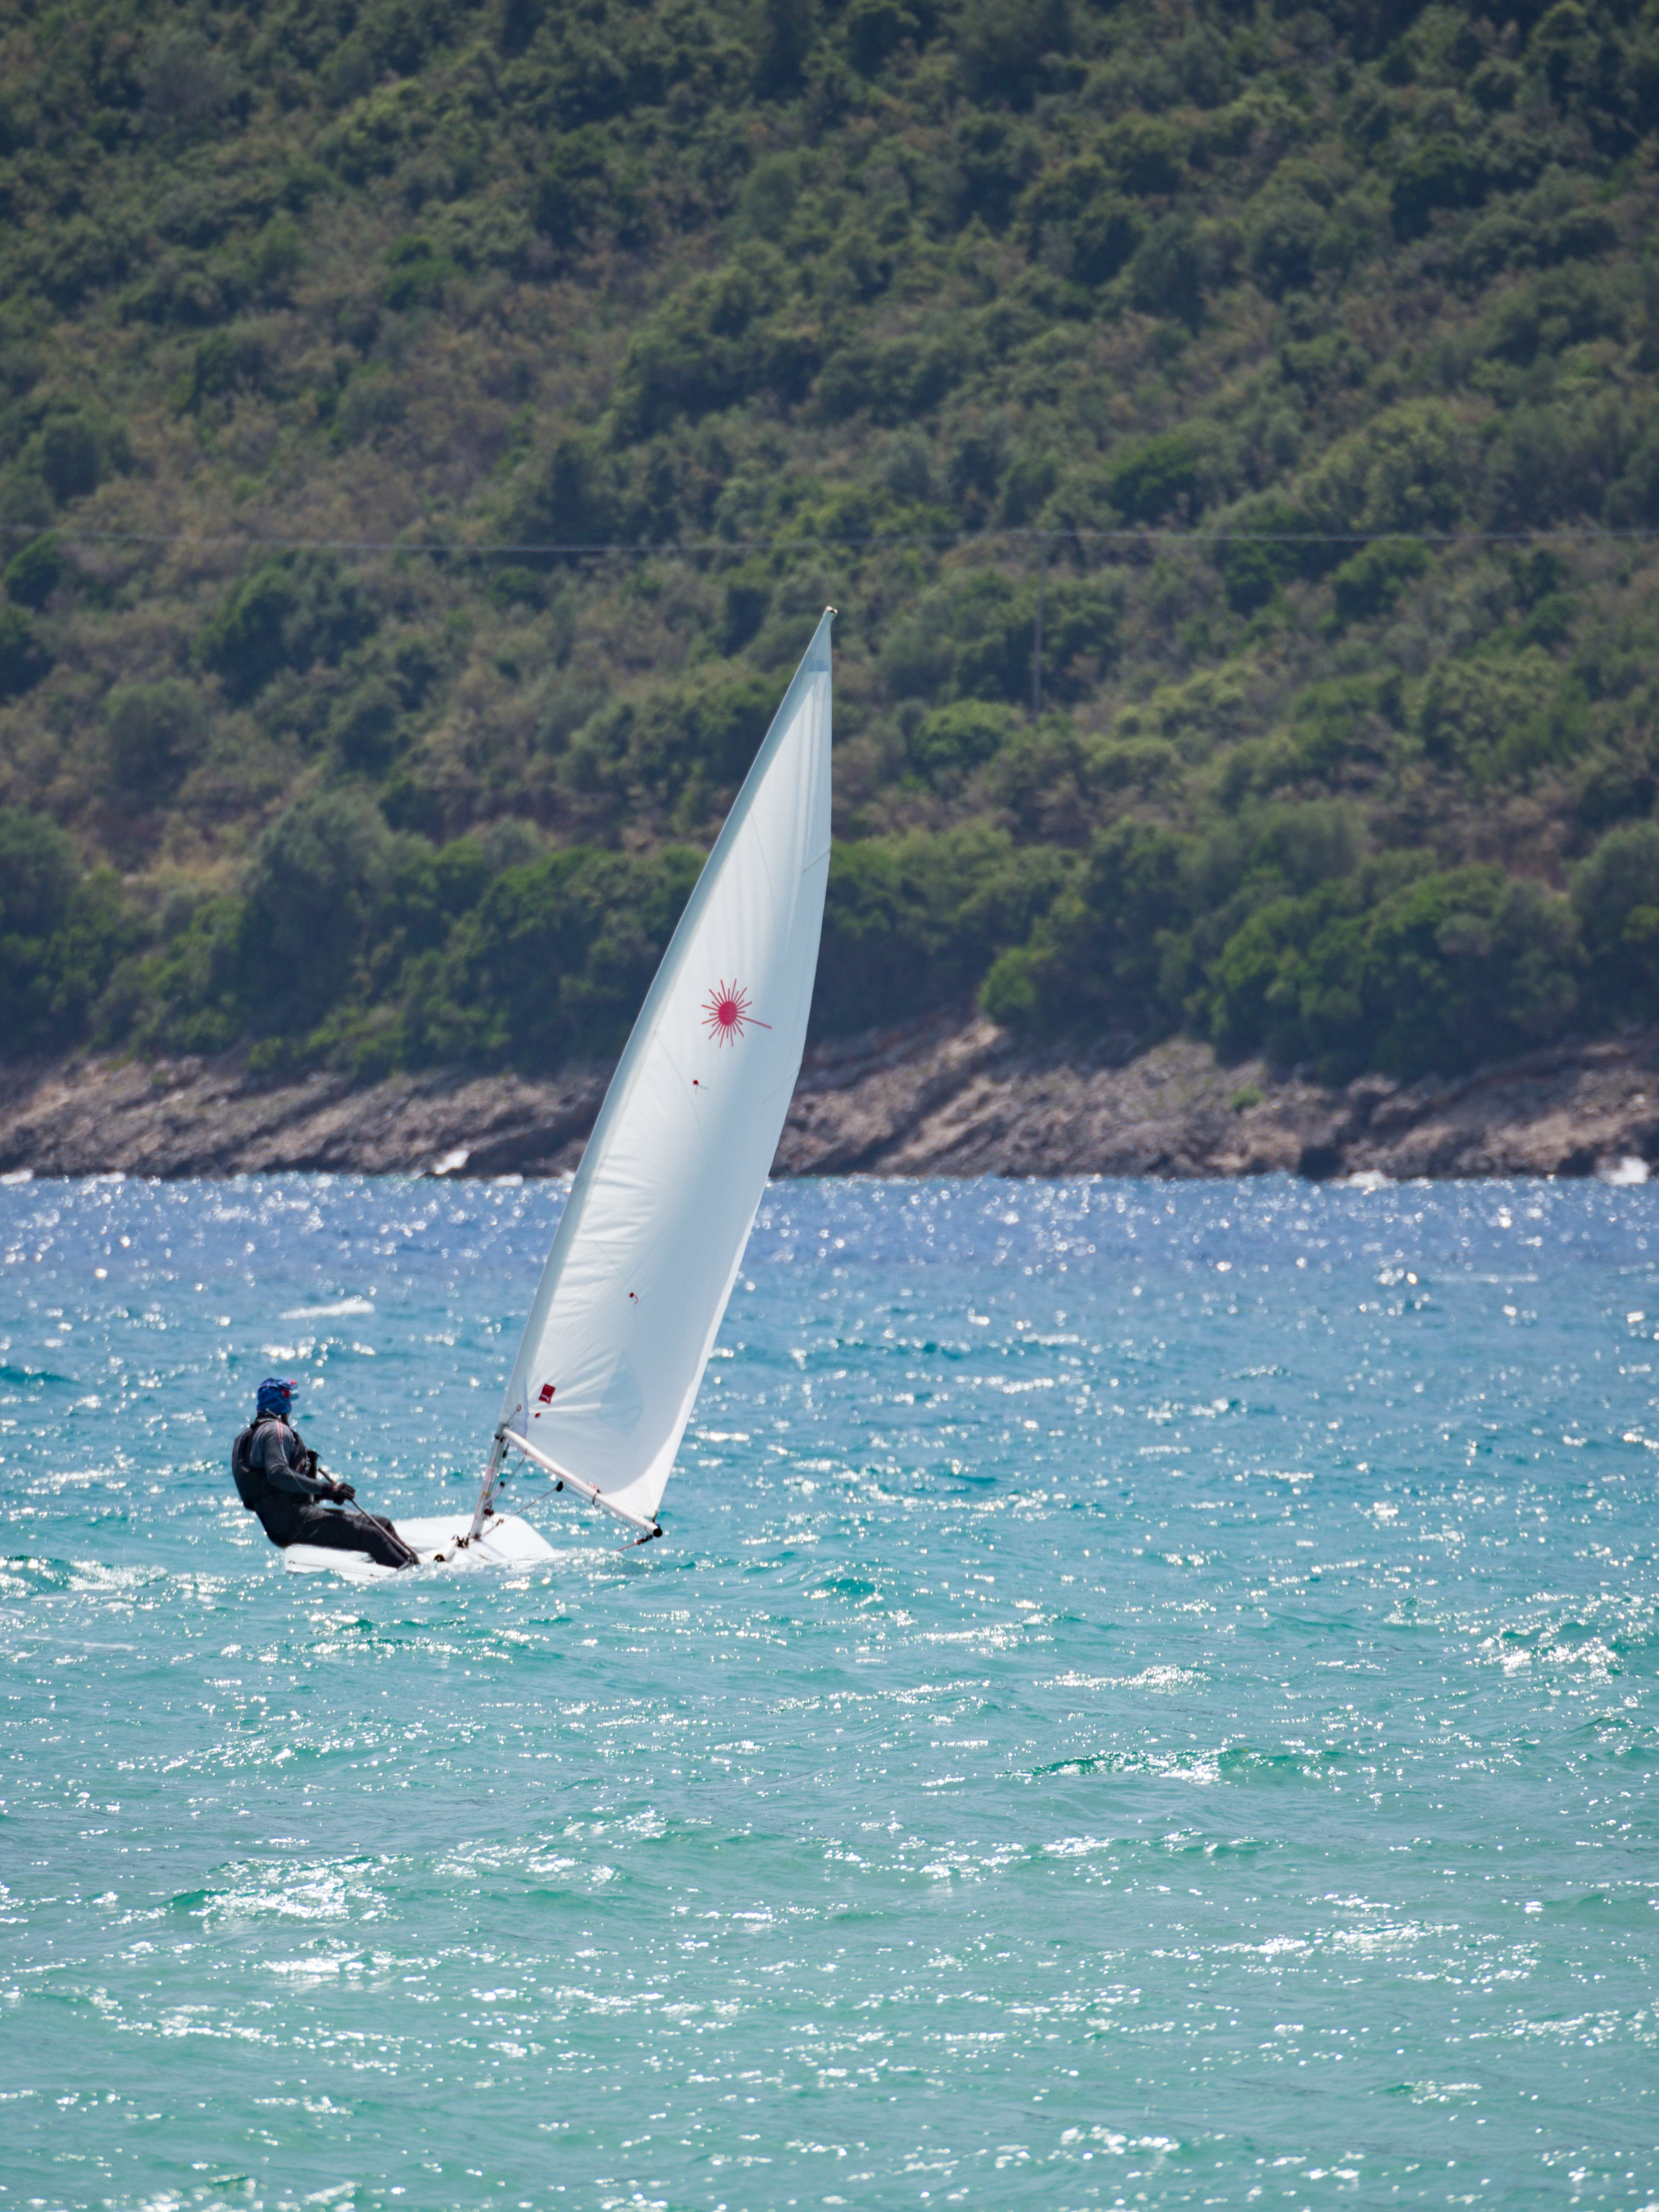 Free stock photo of sail, wind, laser, dinghy